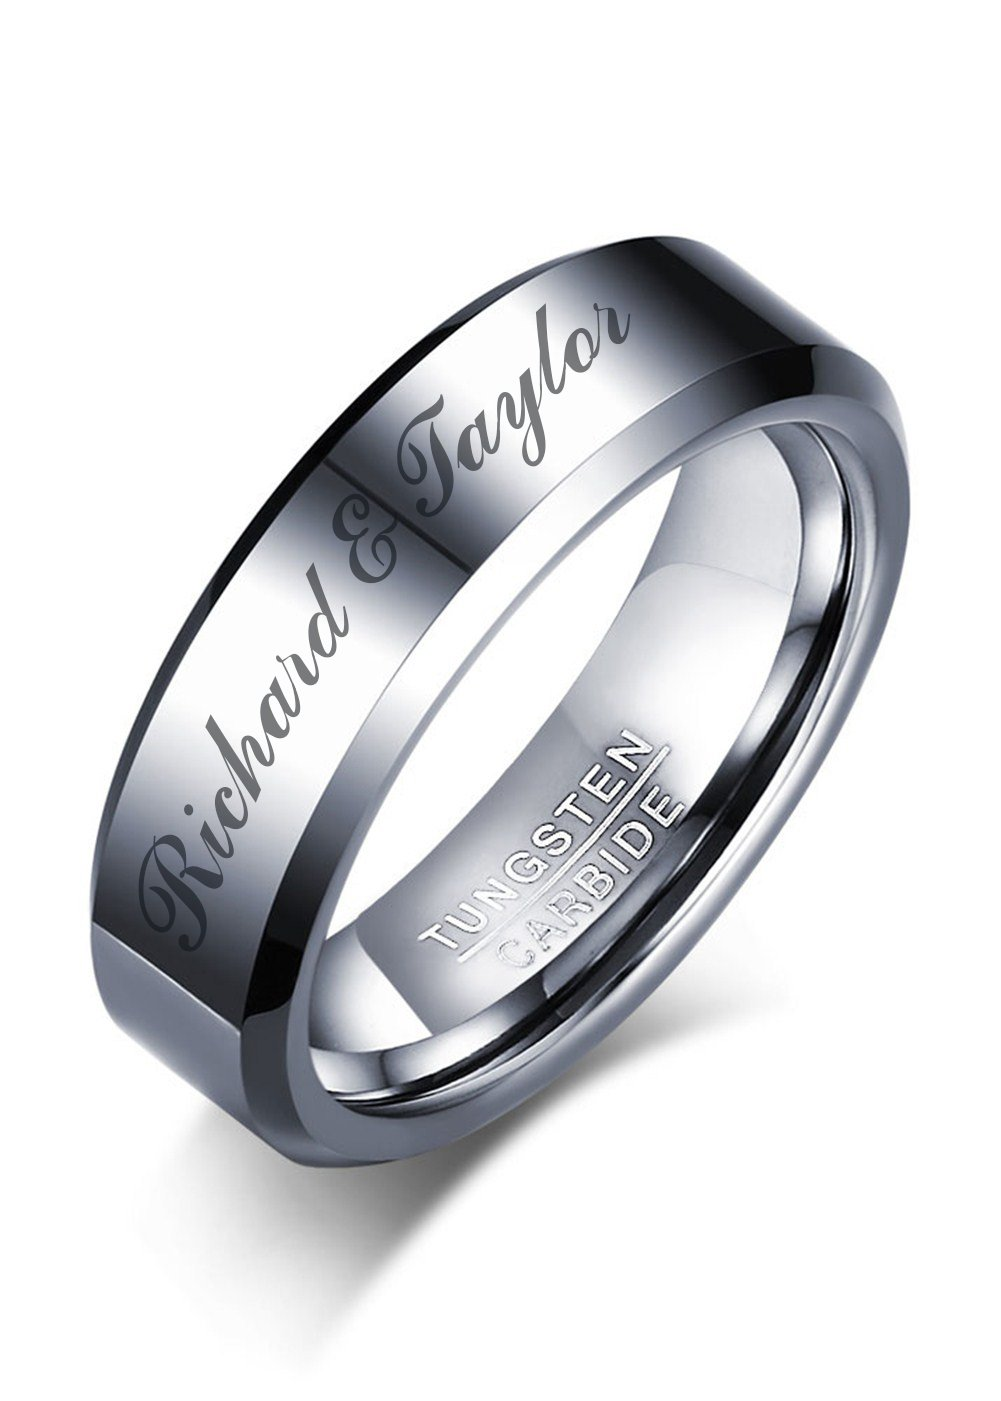 Mealguet Jewelry Personalized Simple Plain Tungsten Carbide Tungsten Carbide Ring Polished Custom Name Wedding Anniversary Band for Men,size 8